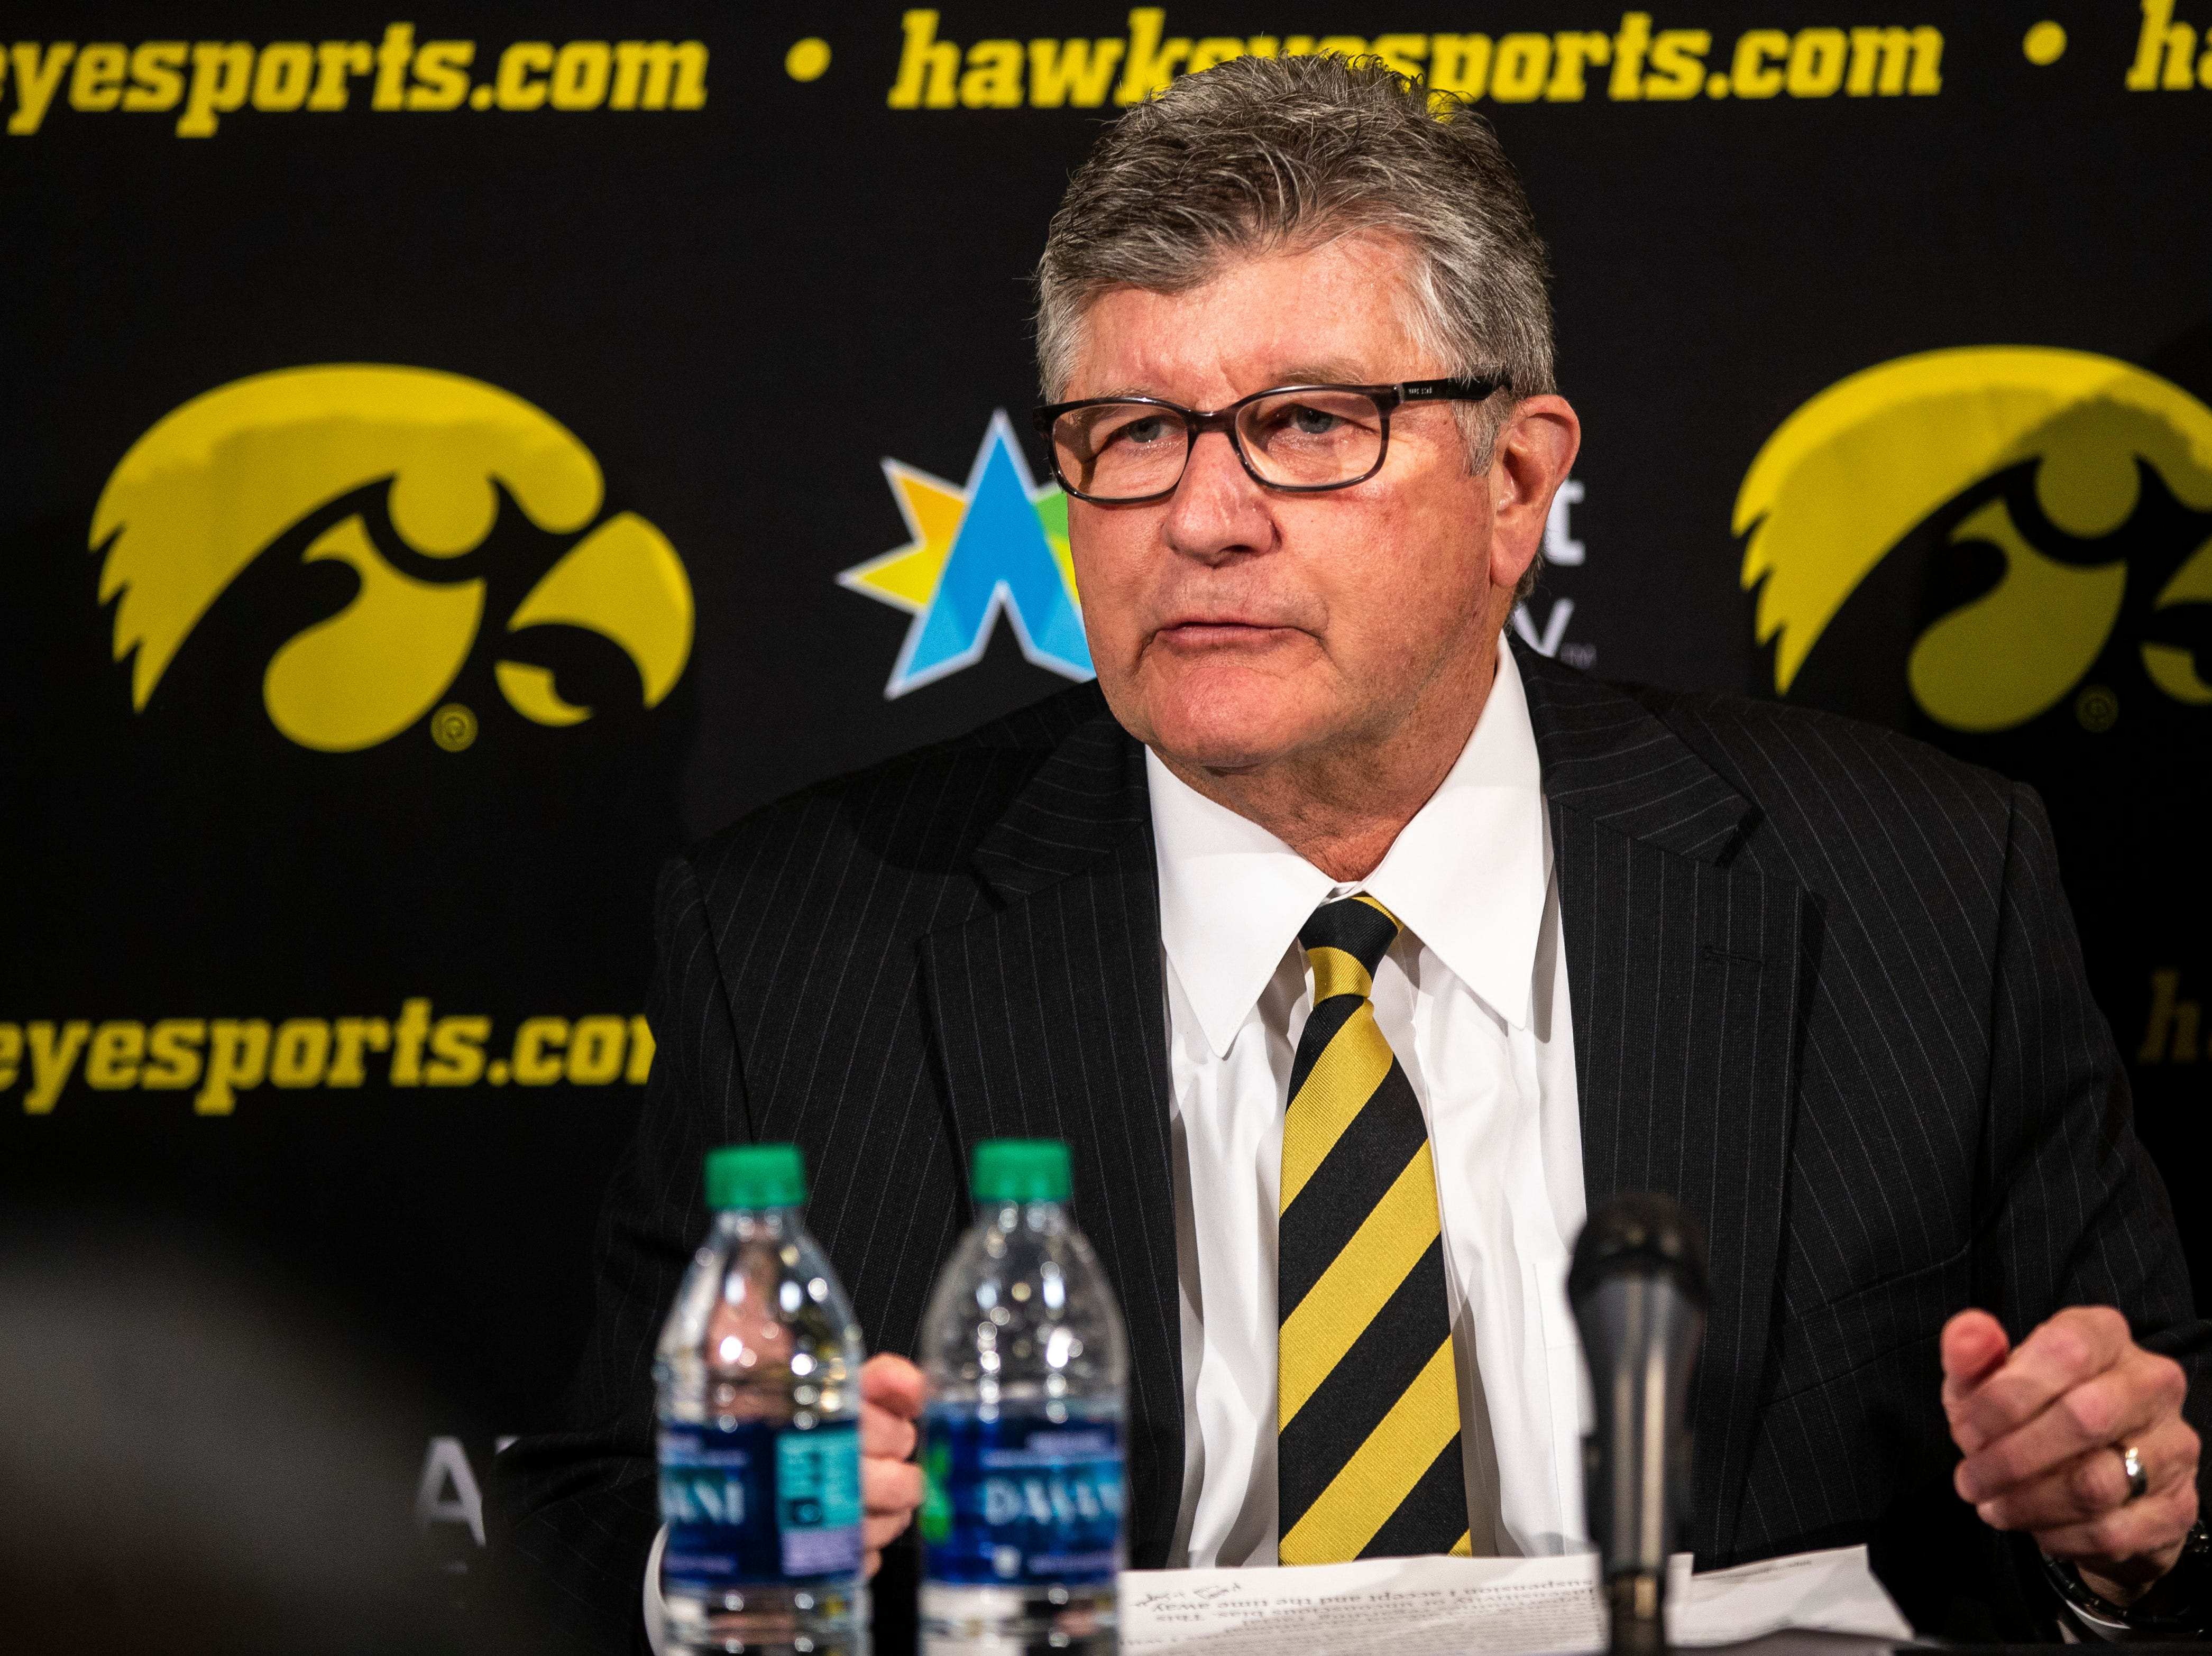 Iowa play-by-play commentator Gary Dolphin, left, and Iowa athletic director Gary Barta during a press conference on Wednesday, Feb. 27, 2019, at Carver-Hawkeye Arena in Iowa City, Iowa.